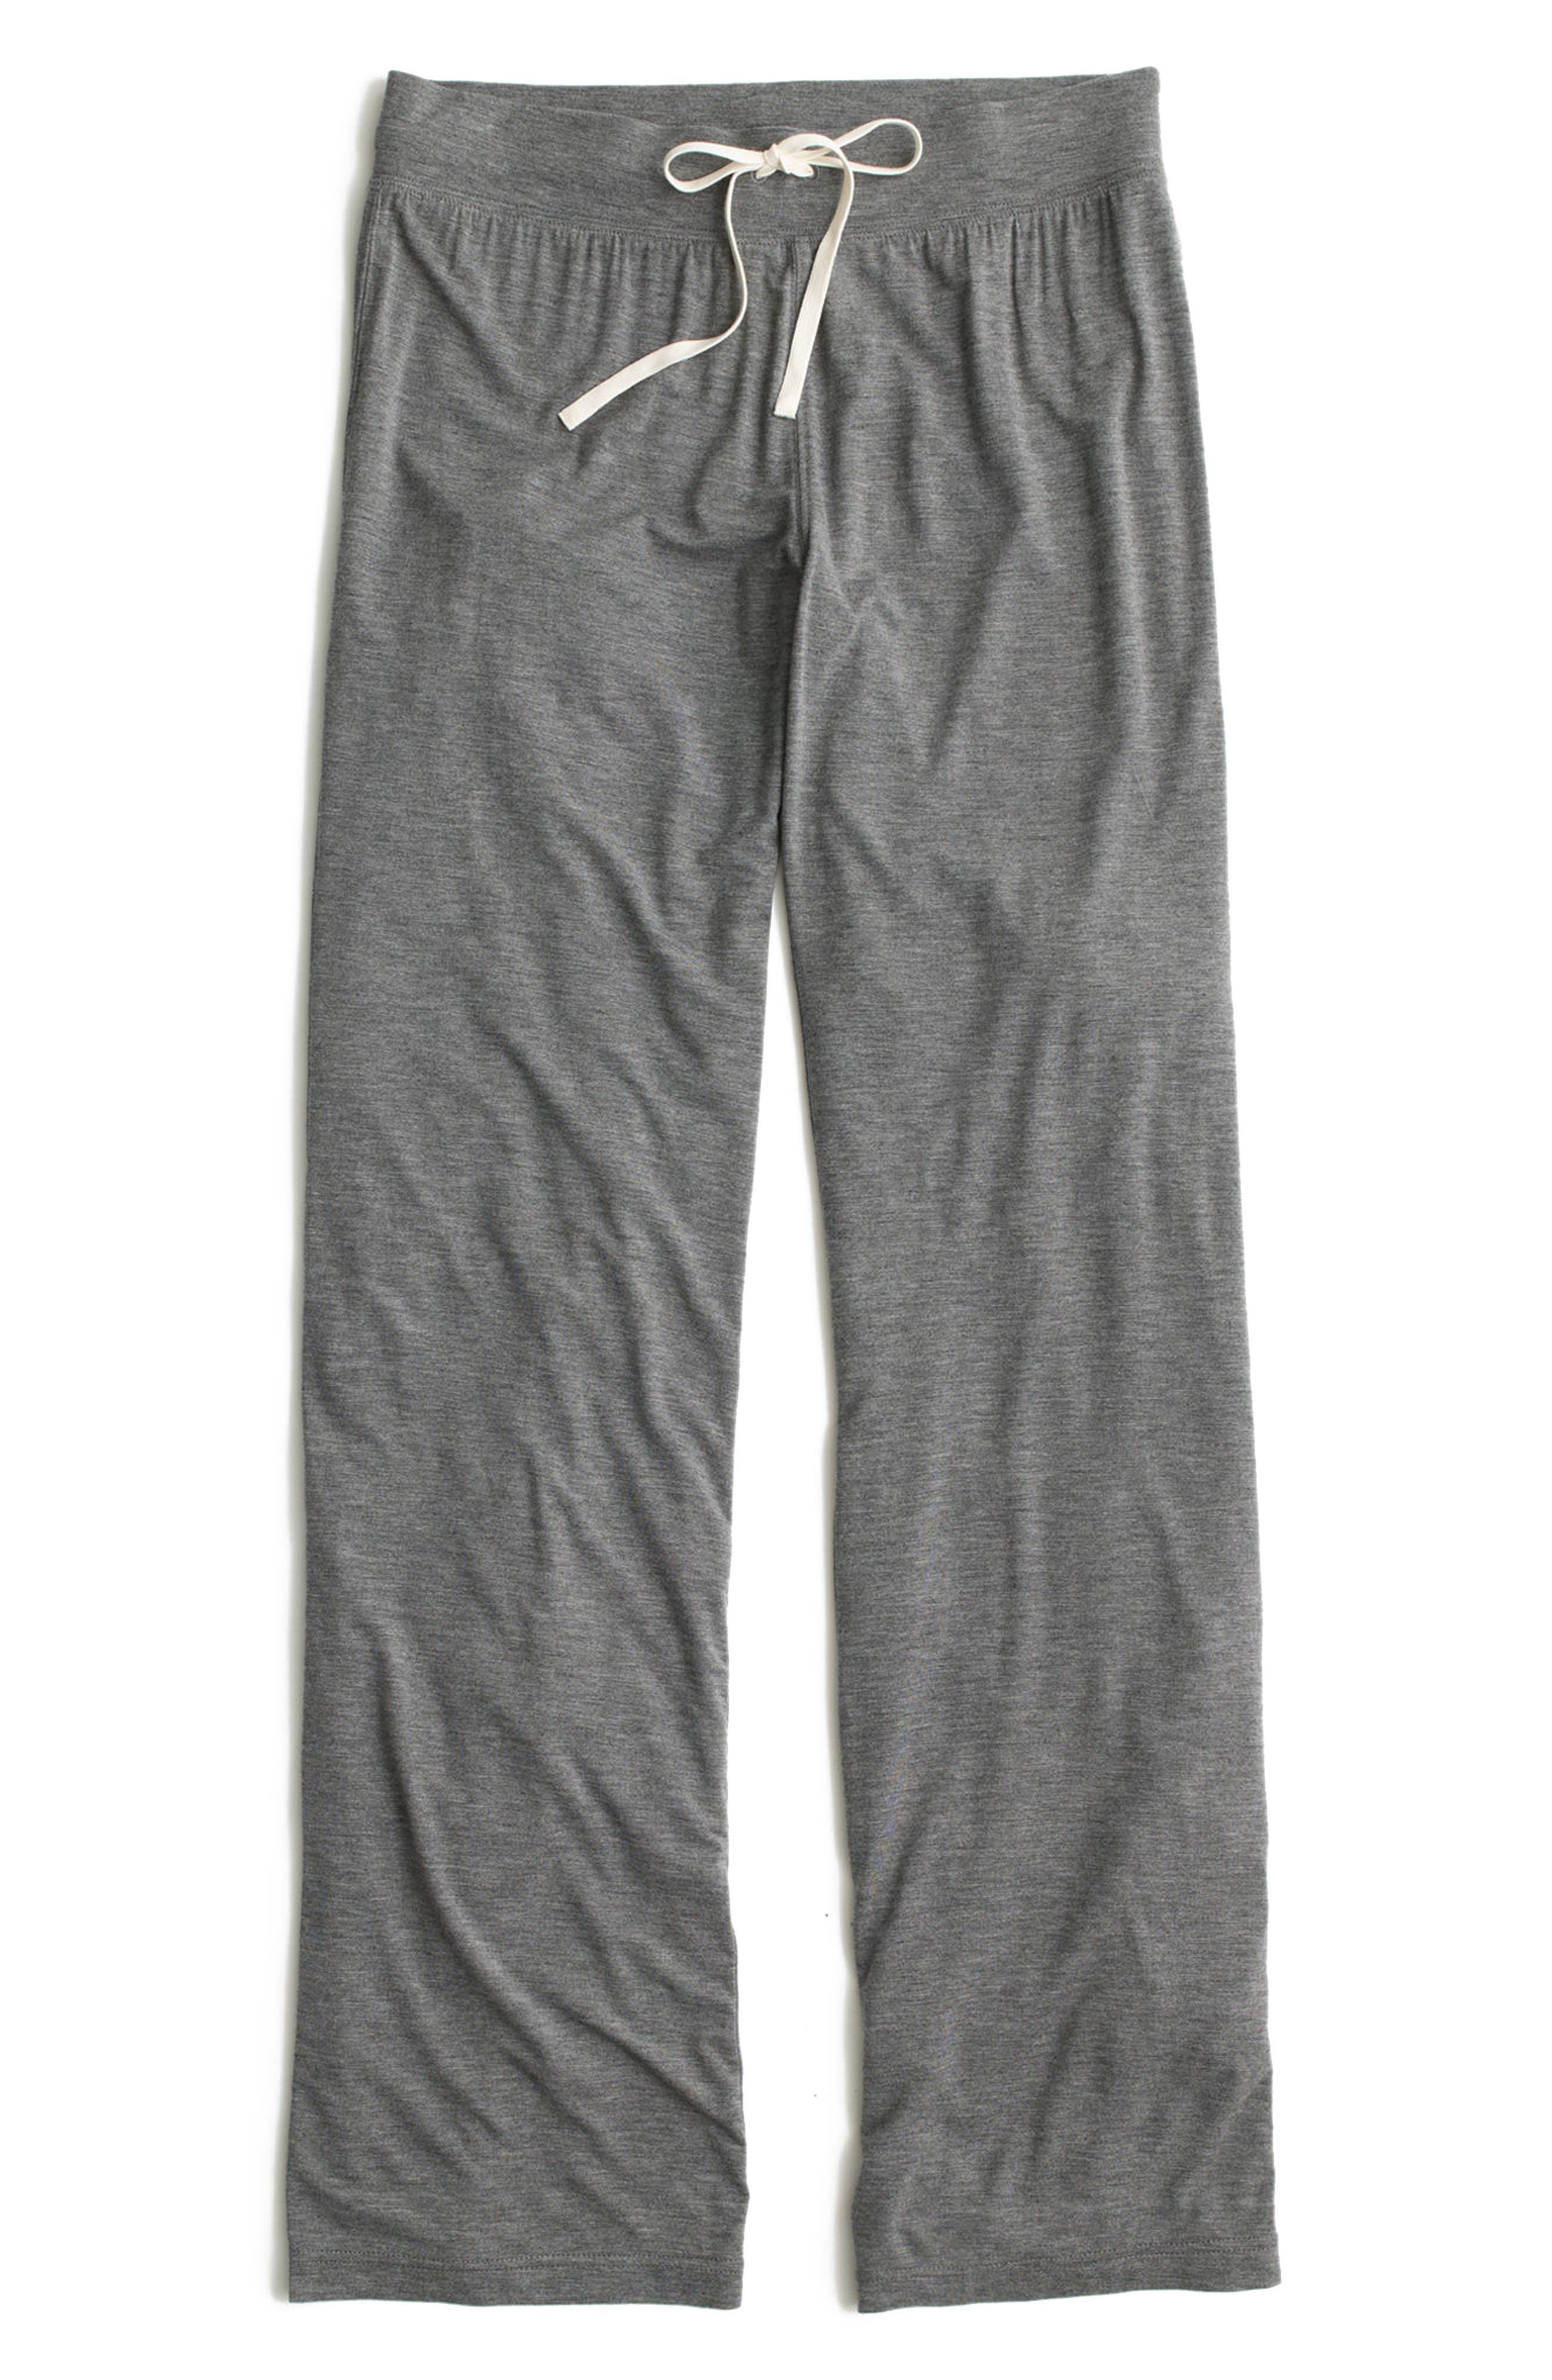 Dreamy Lounge Pants,                             Main thumbnail 1, color,                             Heather Pewter